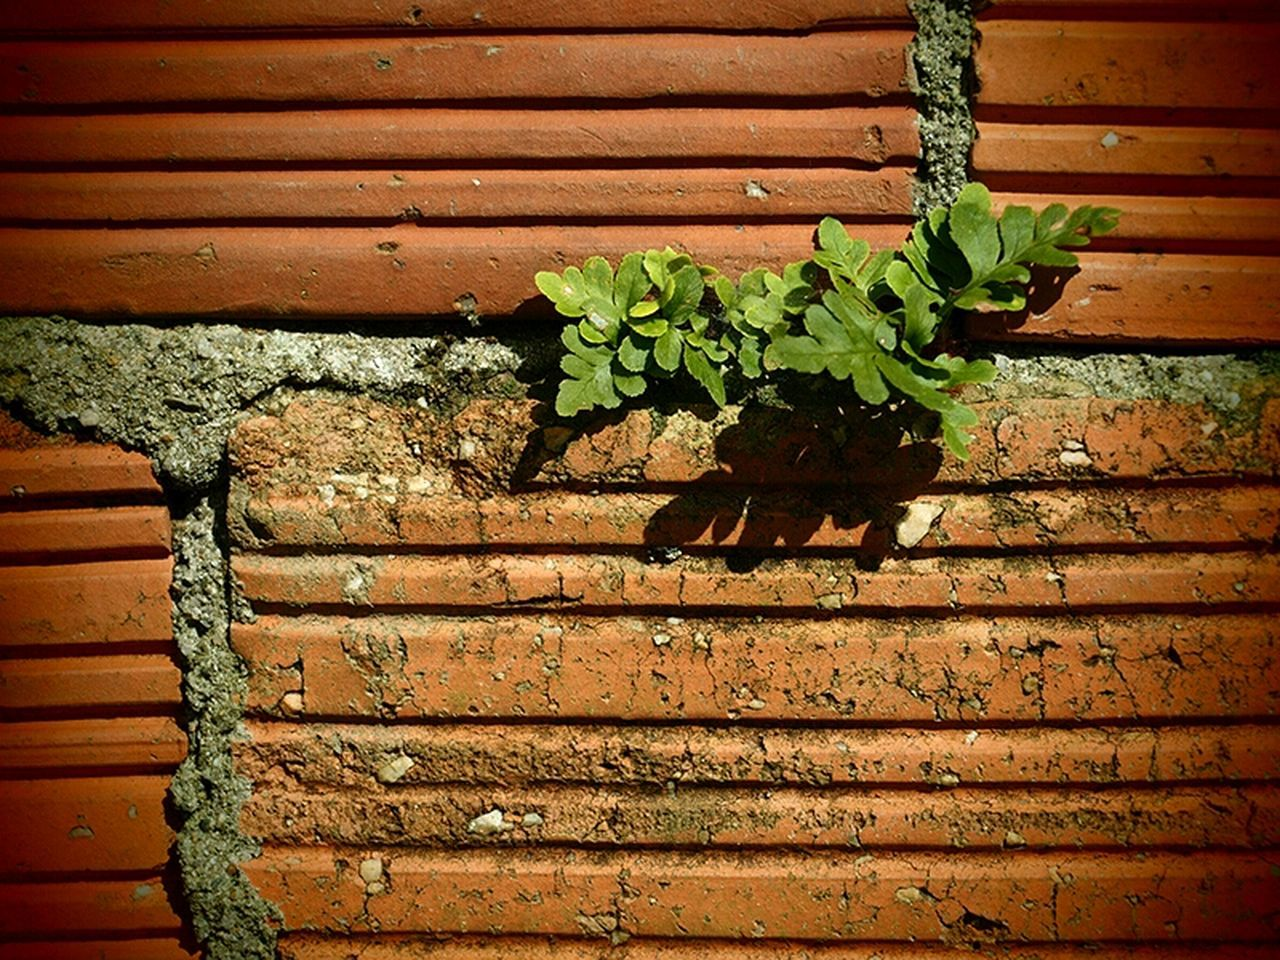 no people, outdoors, corrugated iron, nature, day